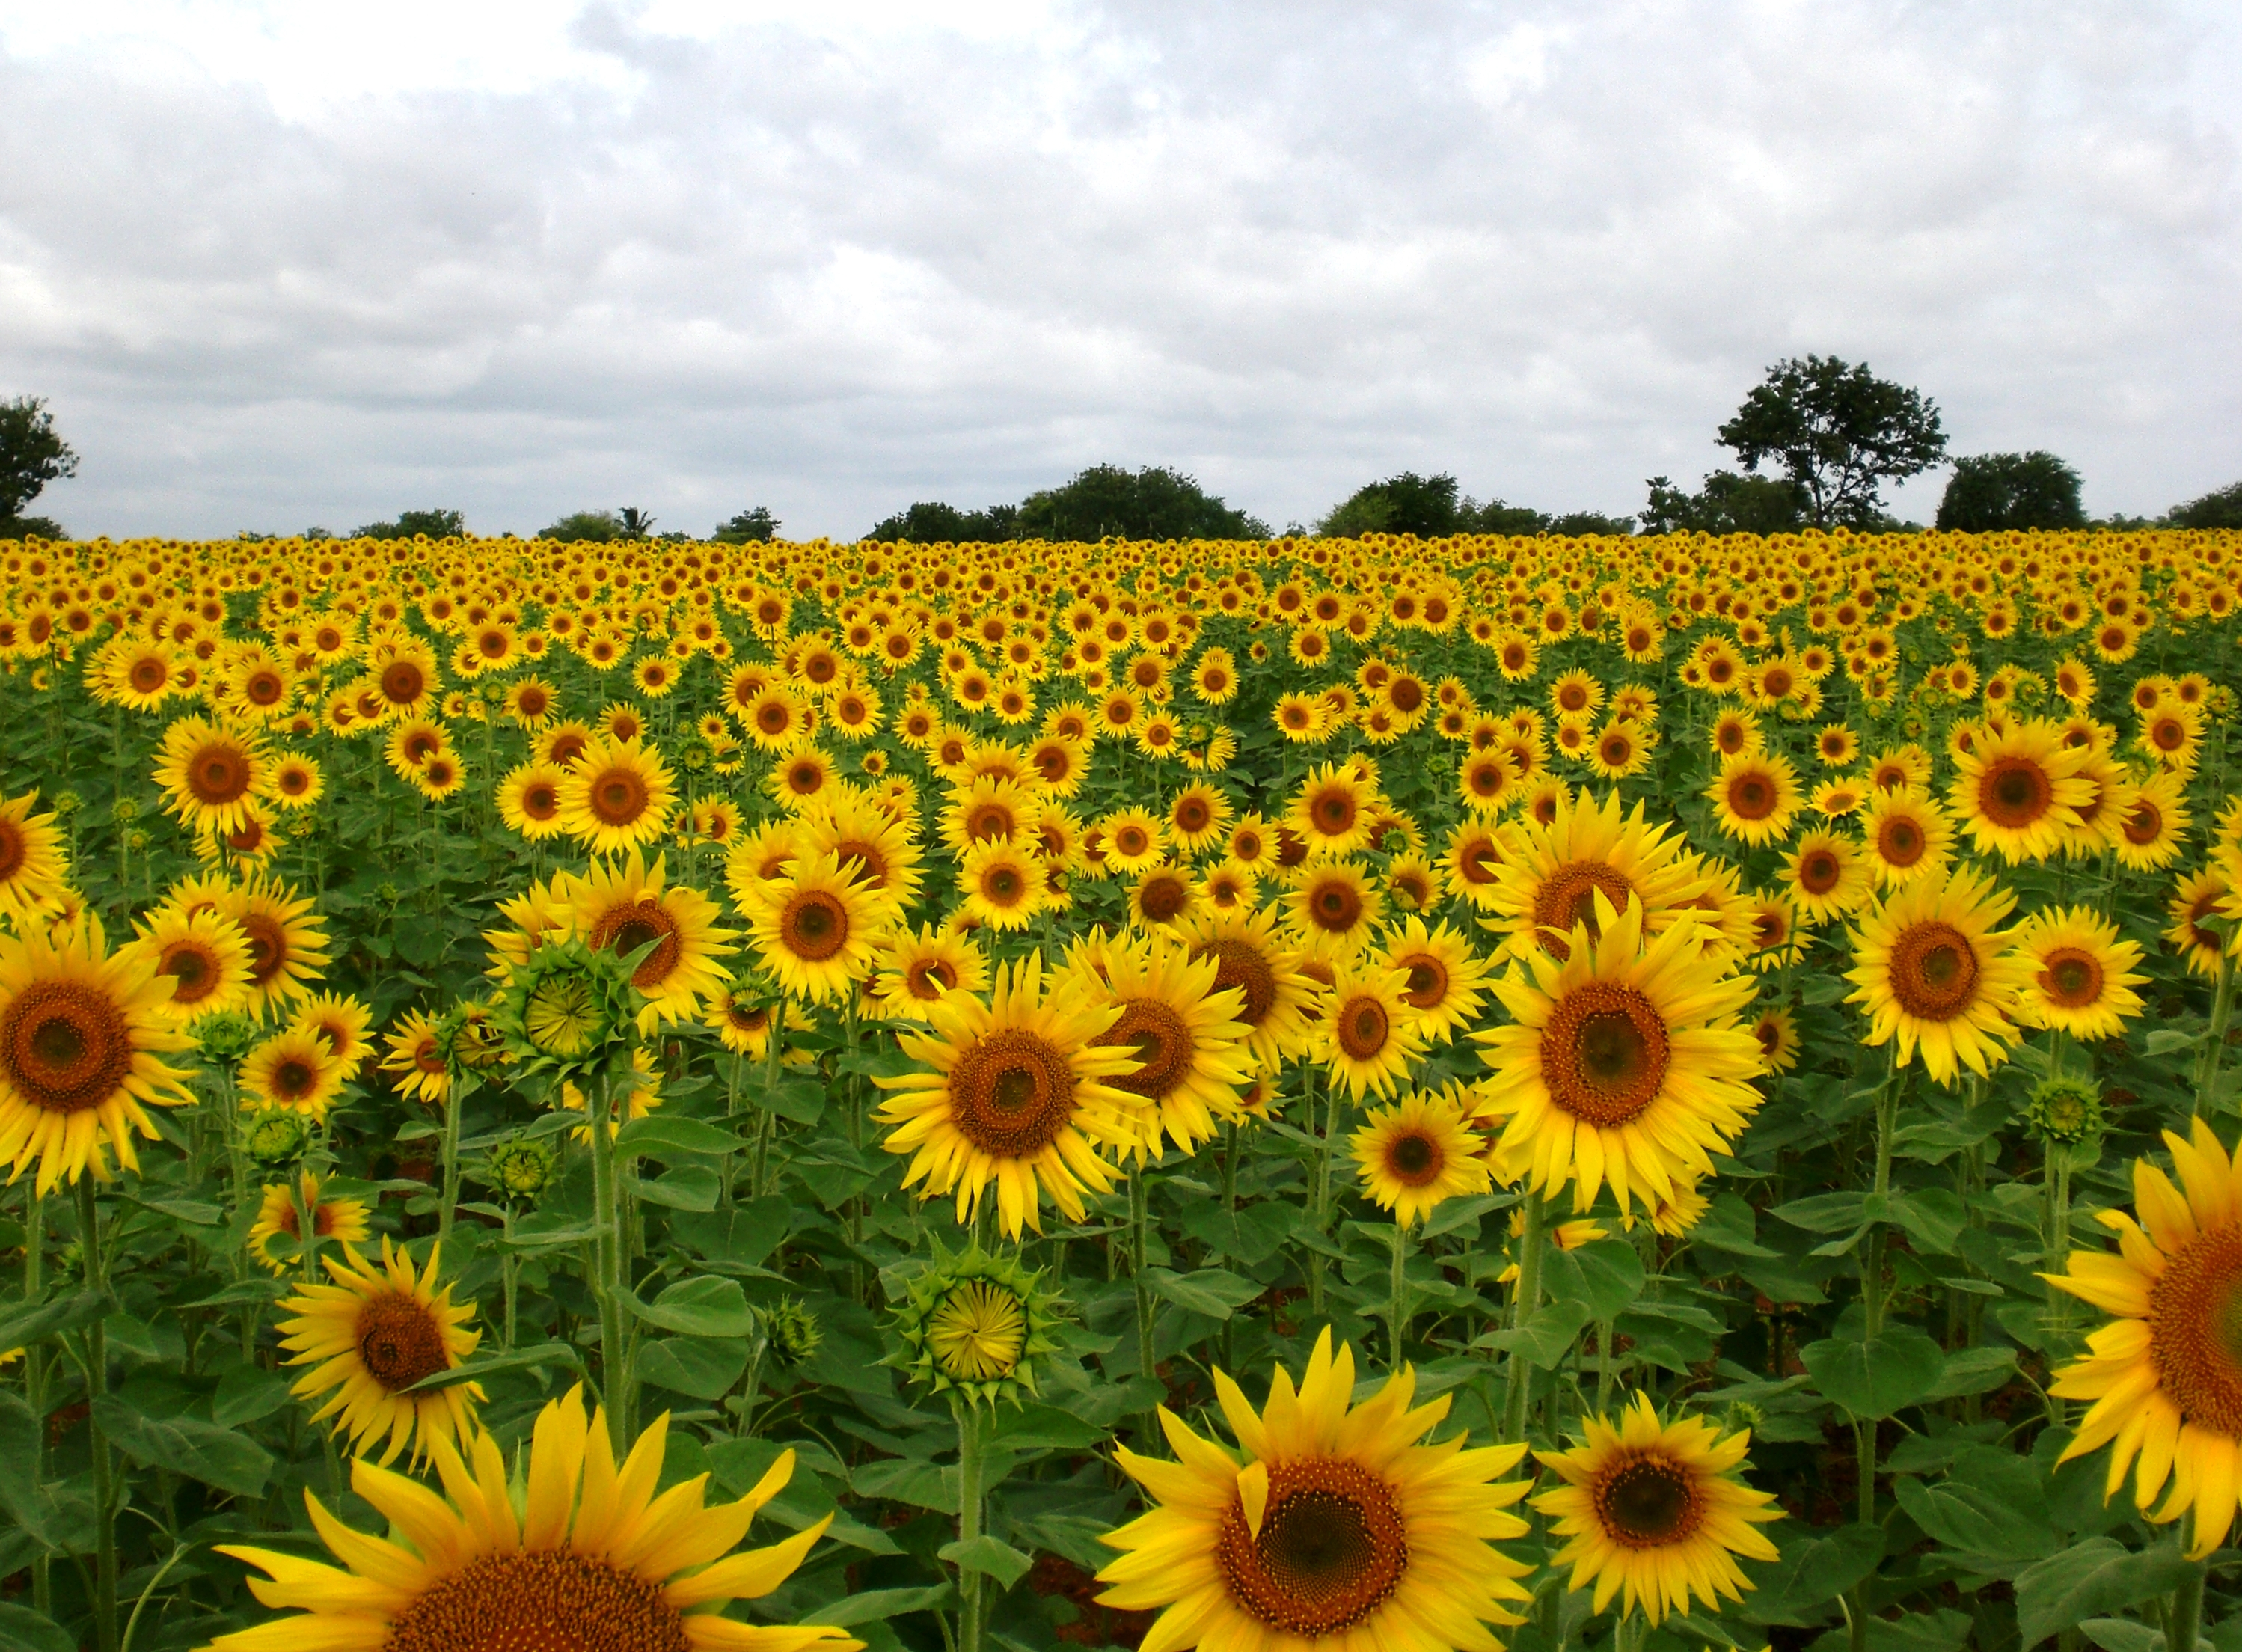 File:Sunflower Field near Raichur, India.jpg - Wikimedia Commons